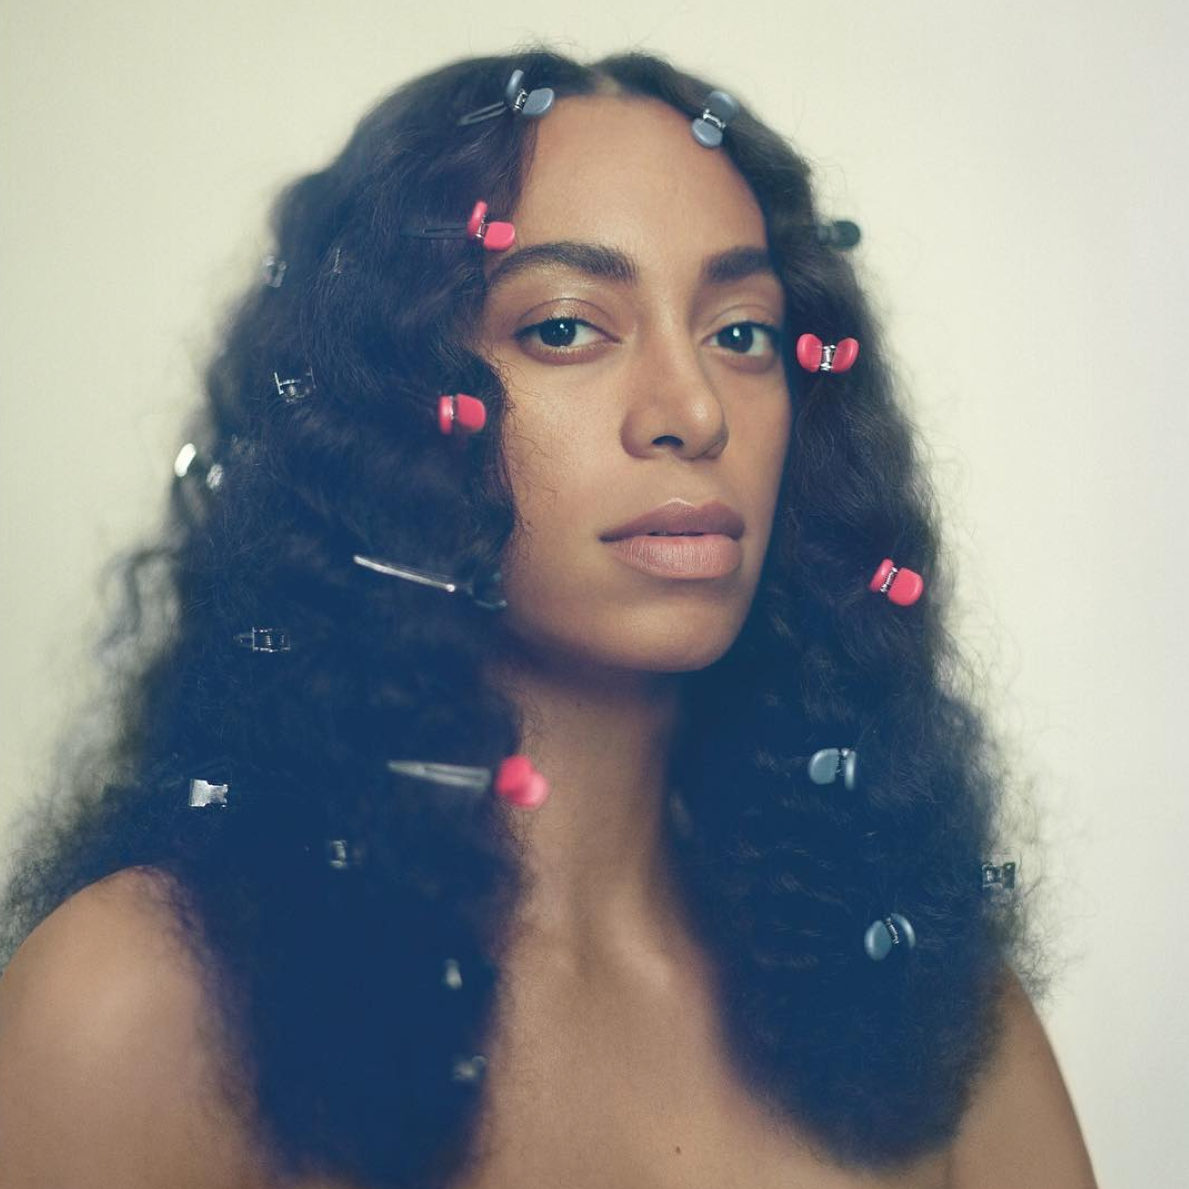 Solange's 'A Seat At the Table' Is The Epitome of #Woke Music